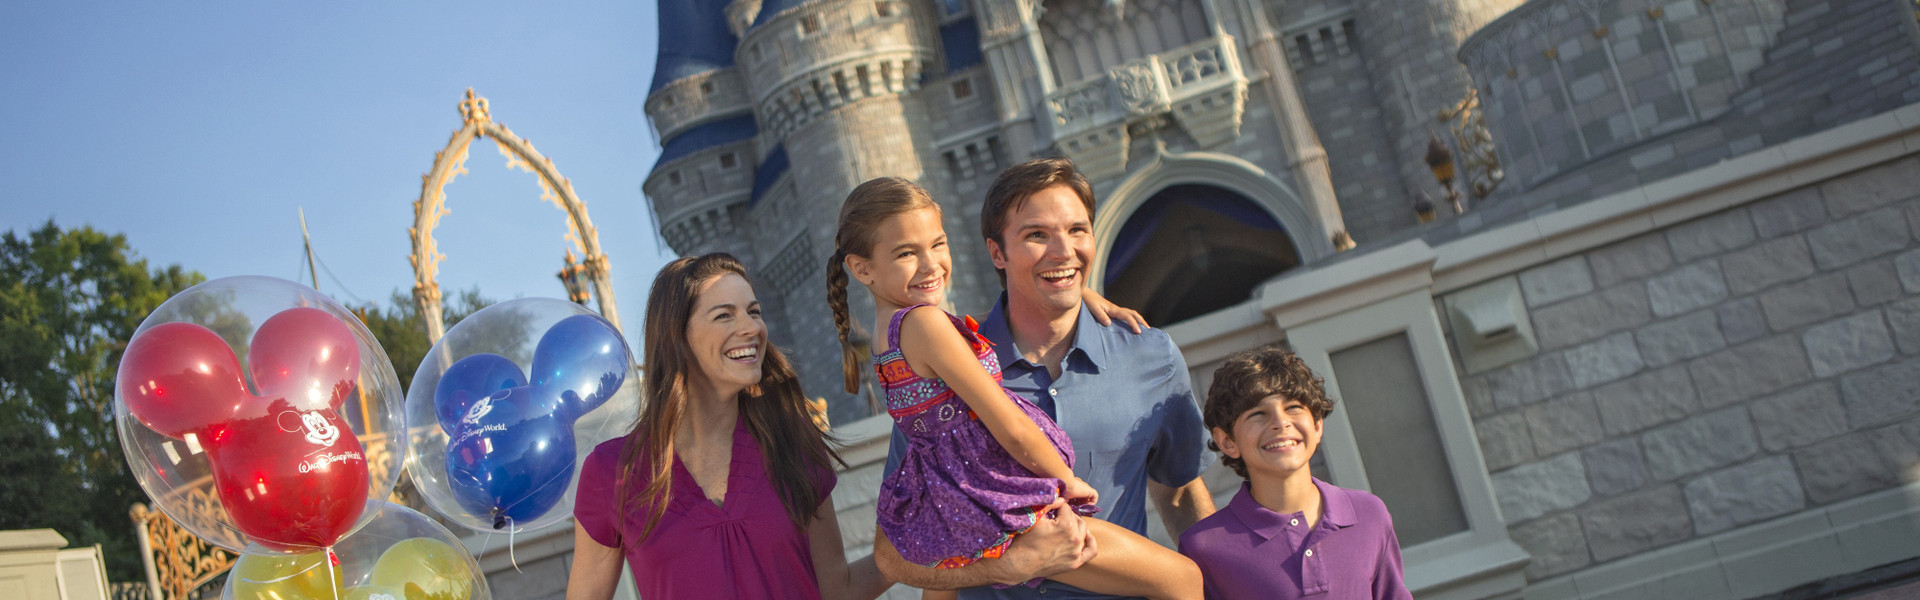 Enjoying Florida Attractions Discounts & Tickets | Orlando Florida Attractions For Adults & Kids Near Sea World in Orlando, FL 32836 | Westgate Blue Tree Resort